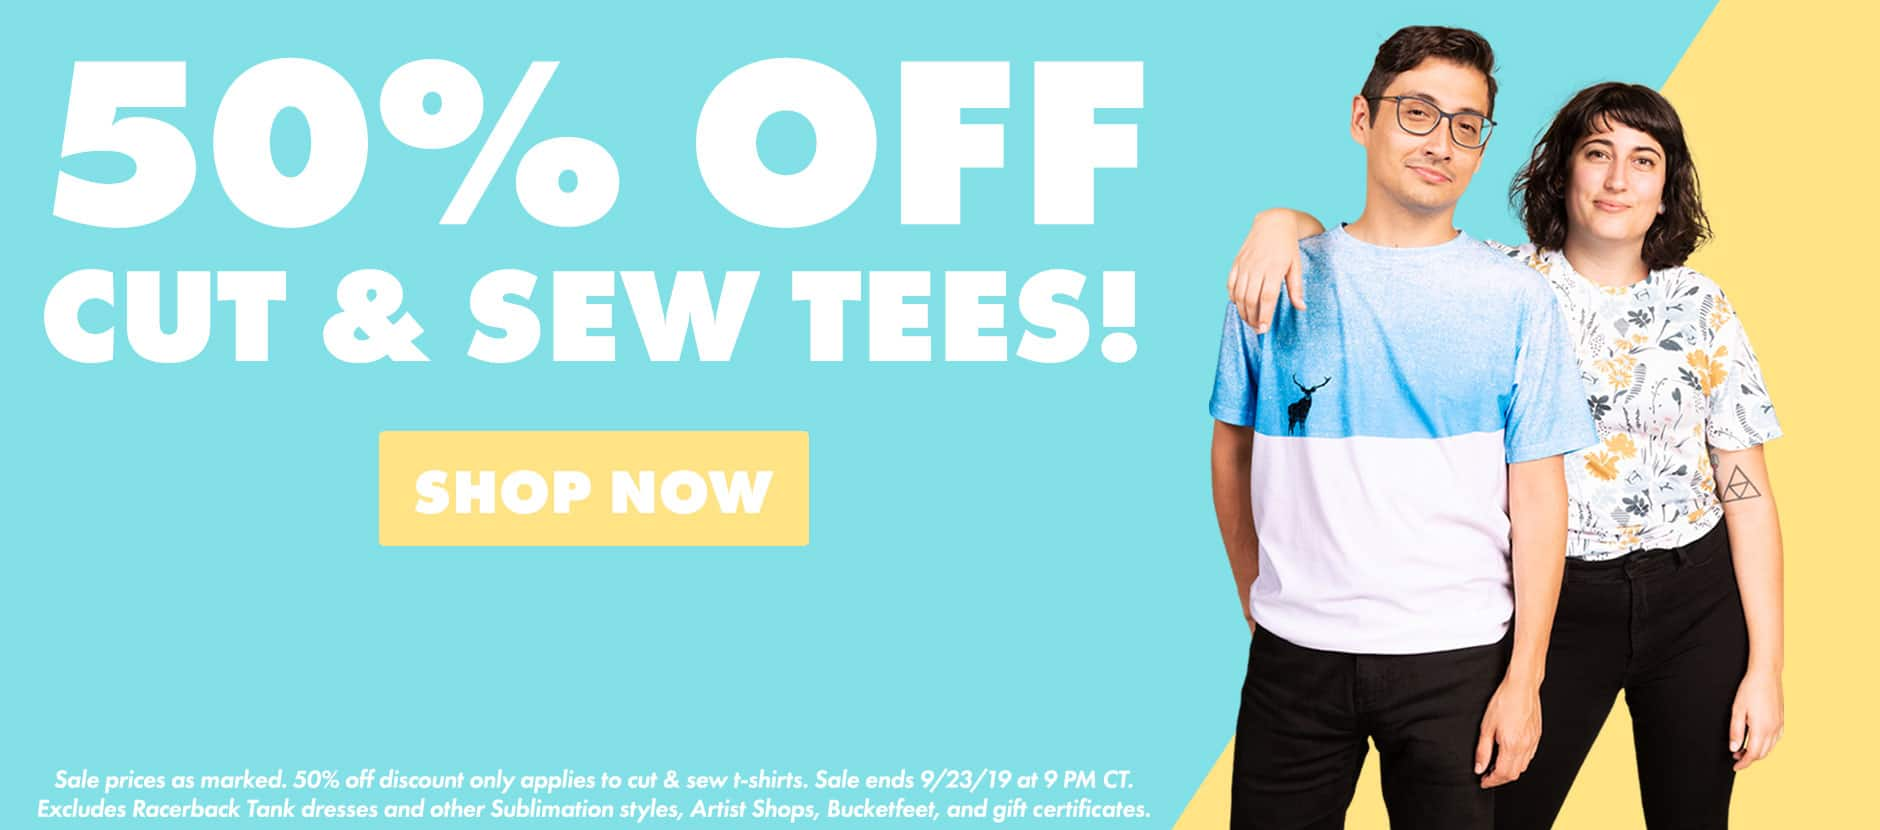 Shop 50% off Cut & Sew Tees